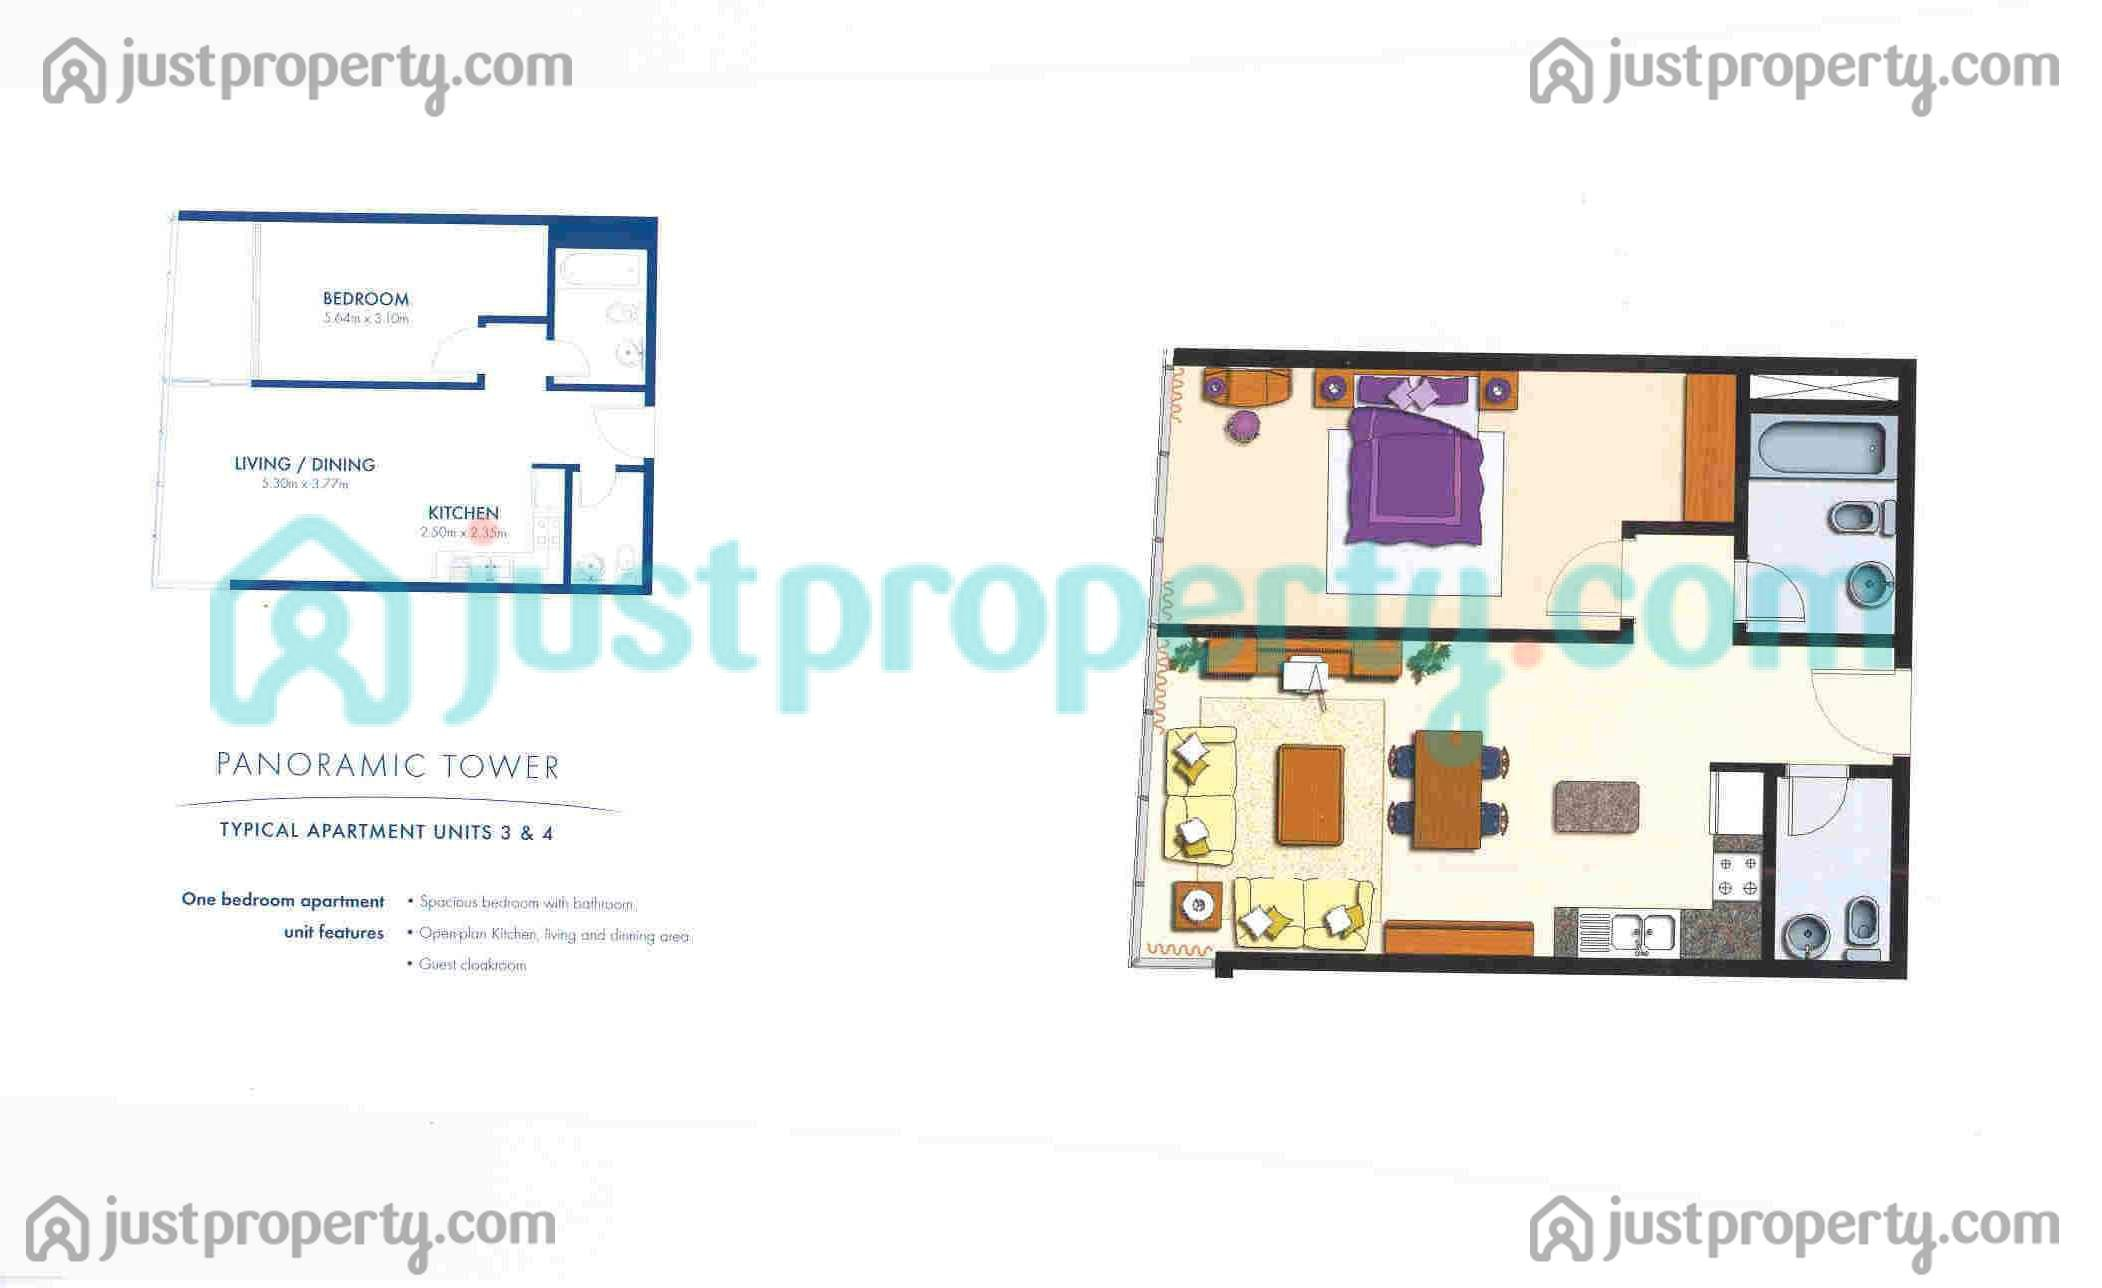 Floor Plans for Panoramic